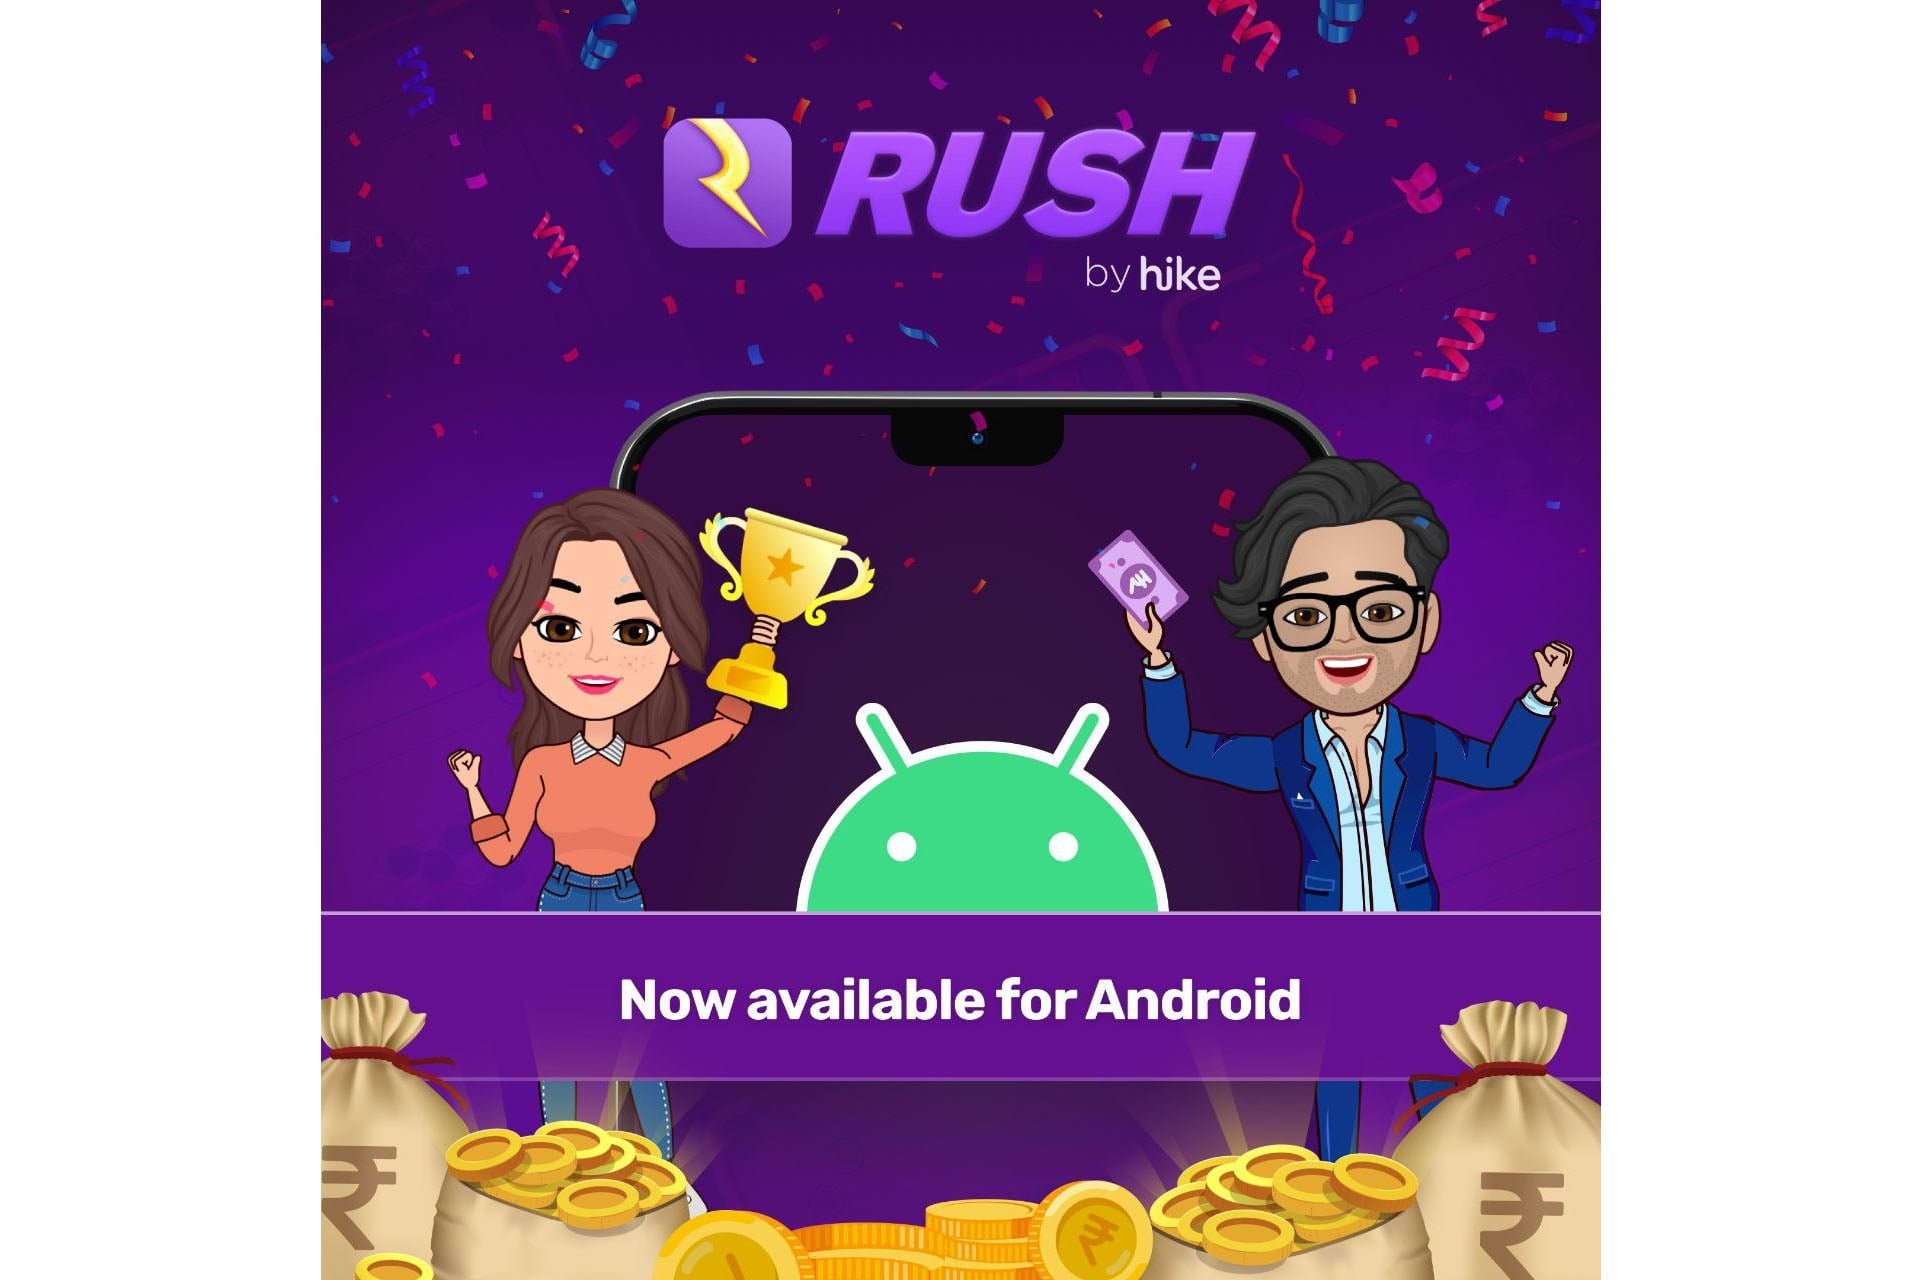 Rush by Hike now available on Android